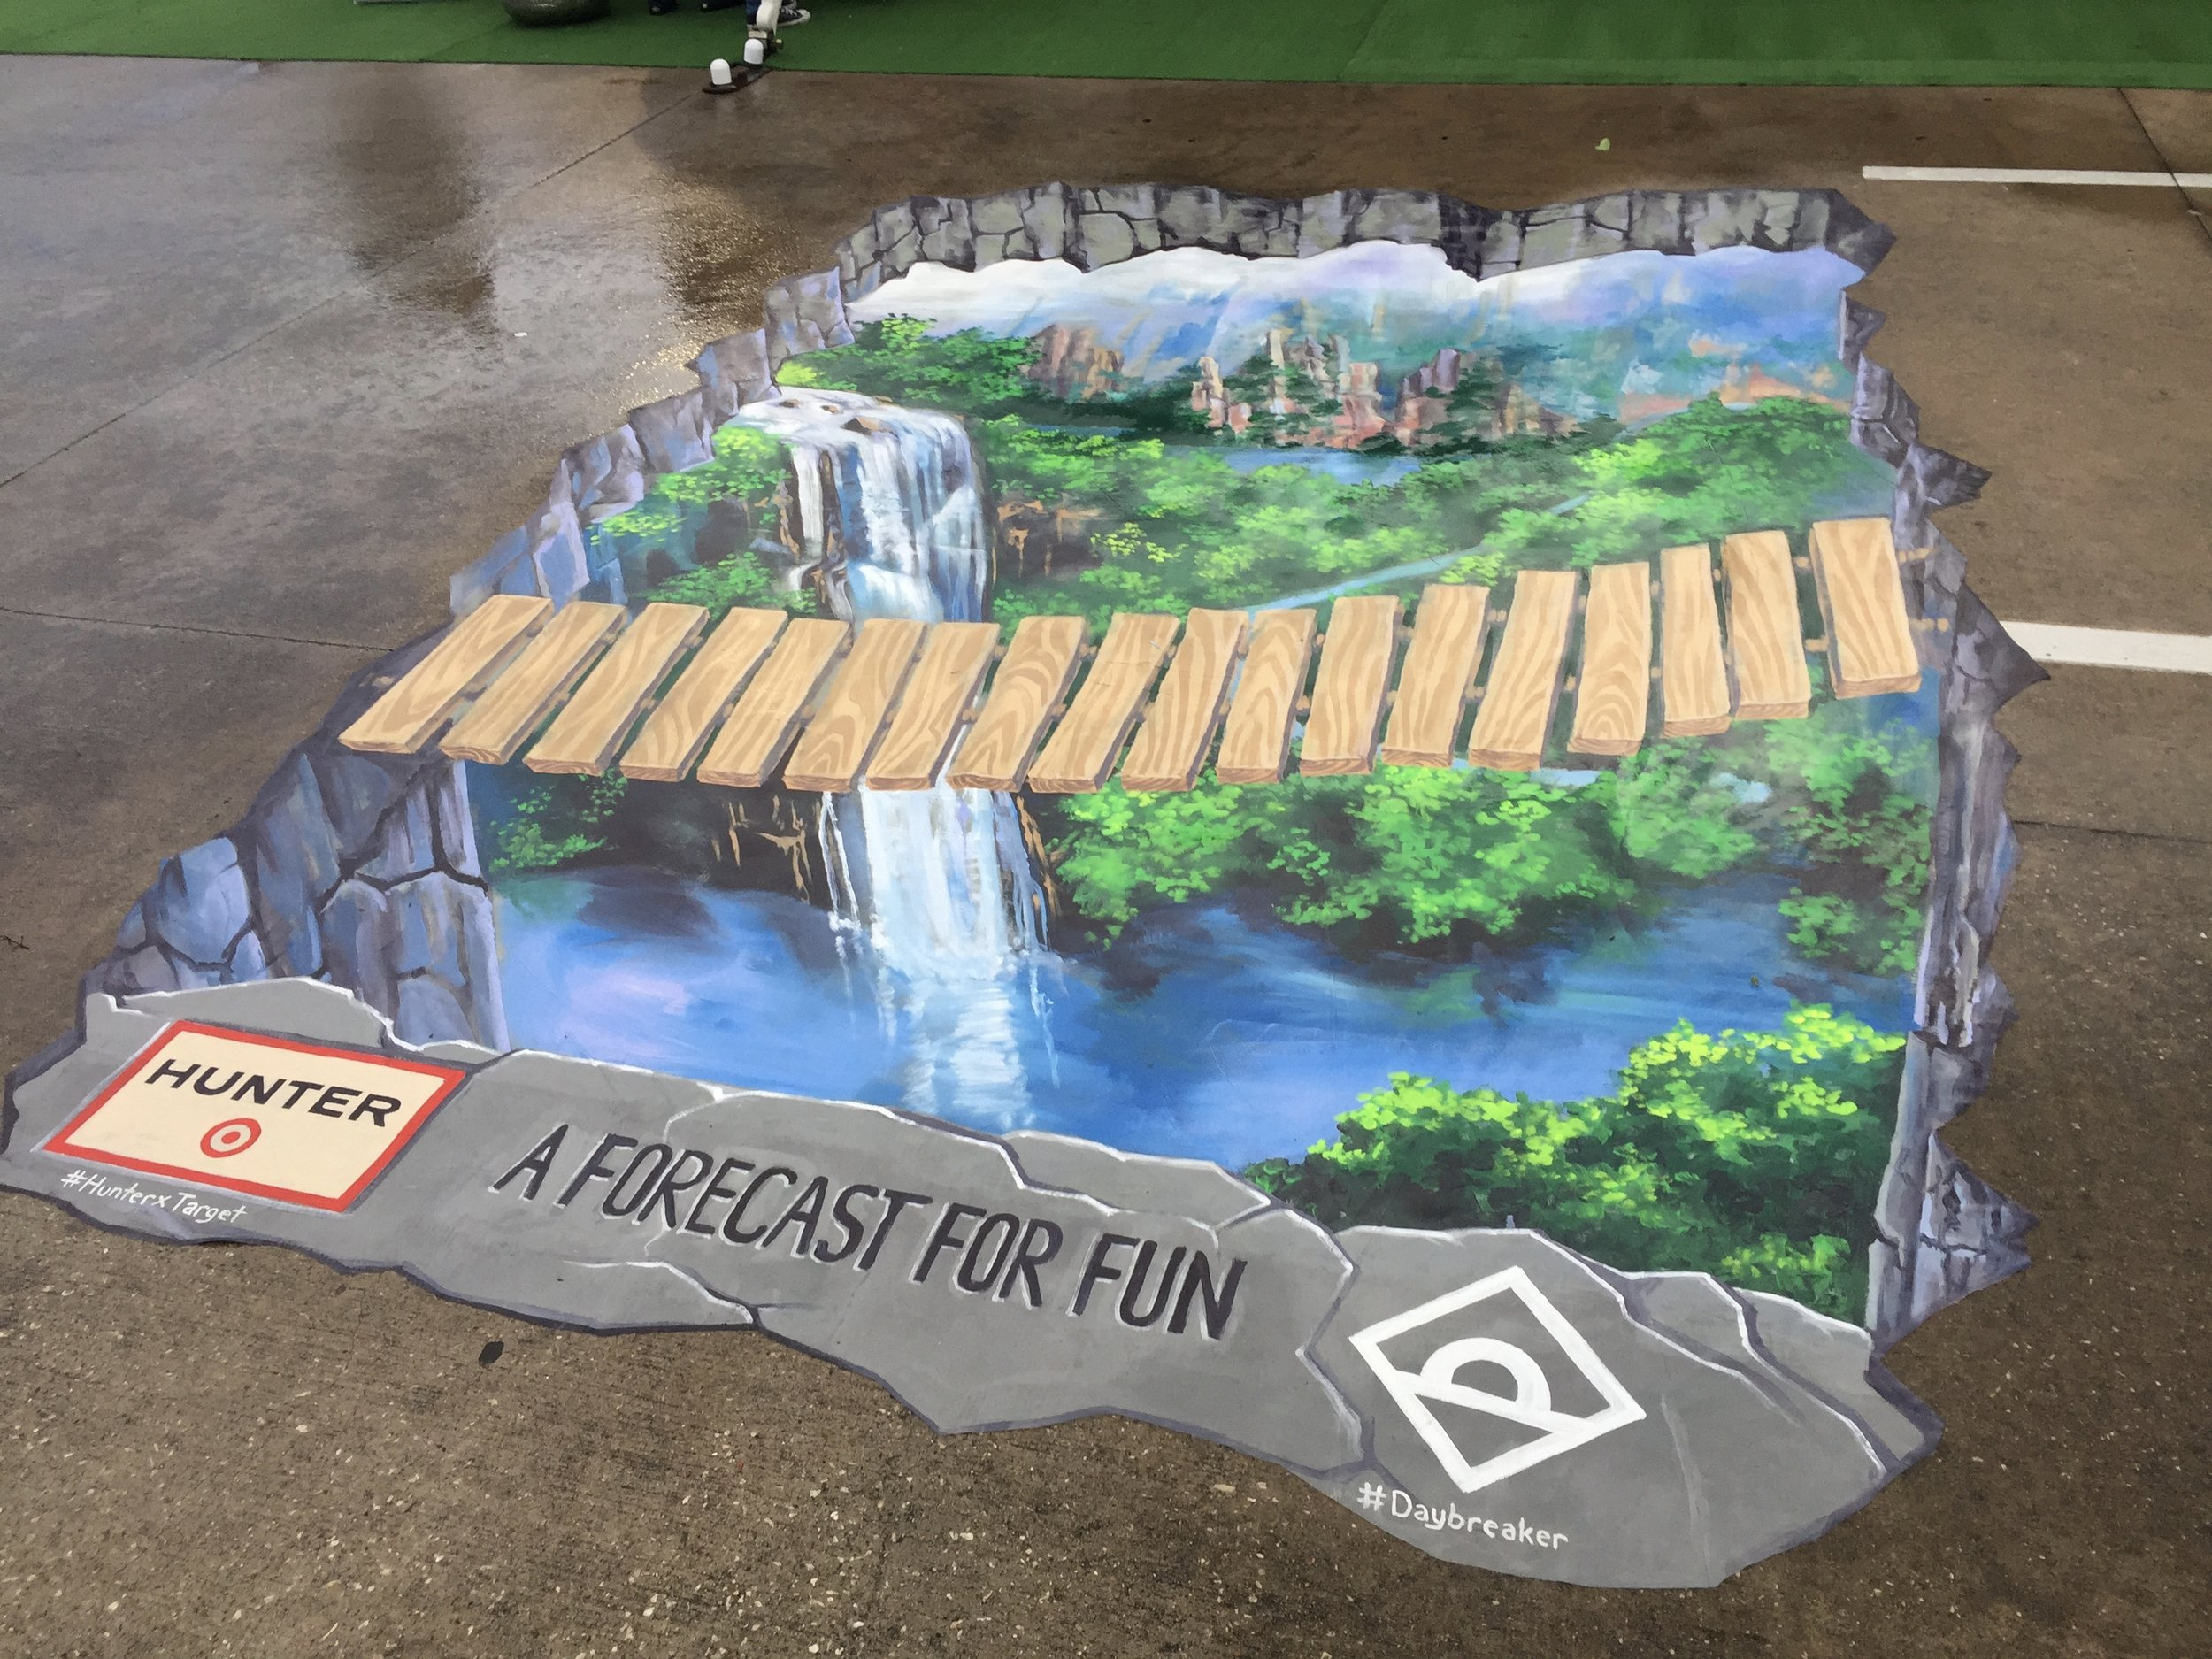 3D Street Painting at a Daybreaker event promoting Hunter and Target's cross promotion.  Wooden bridge over hole in the ground.